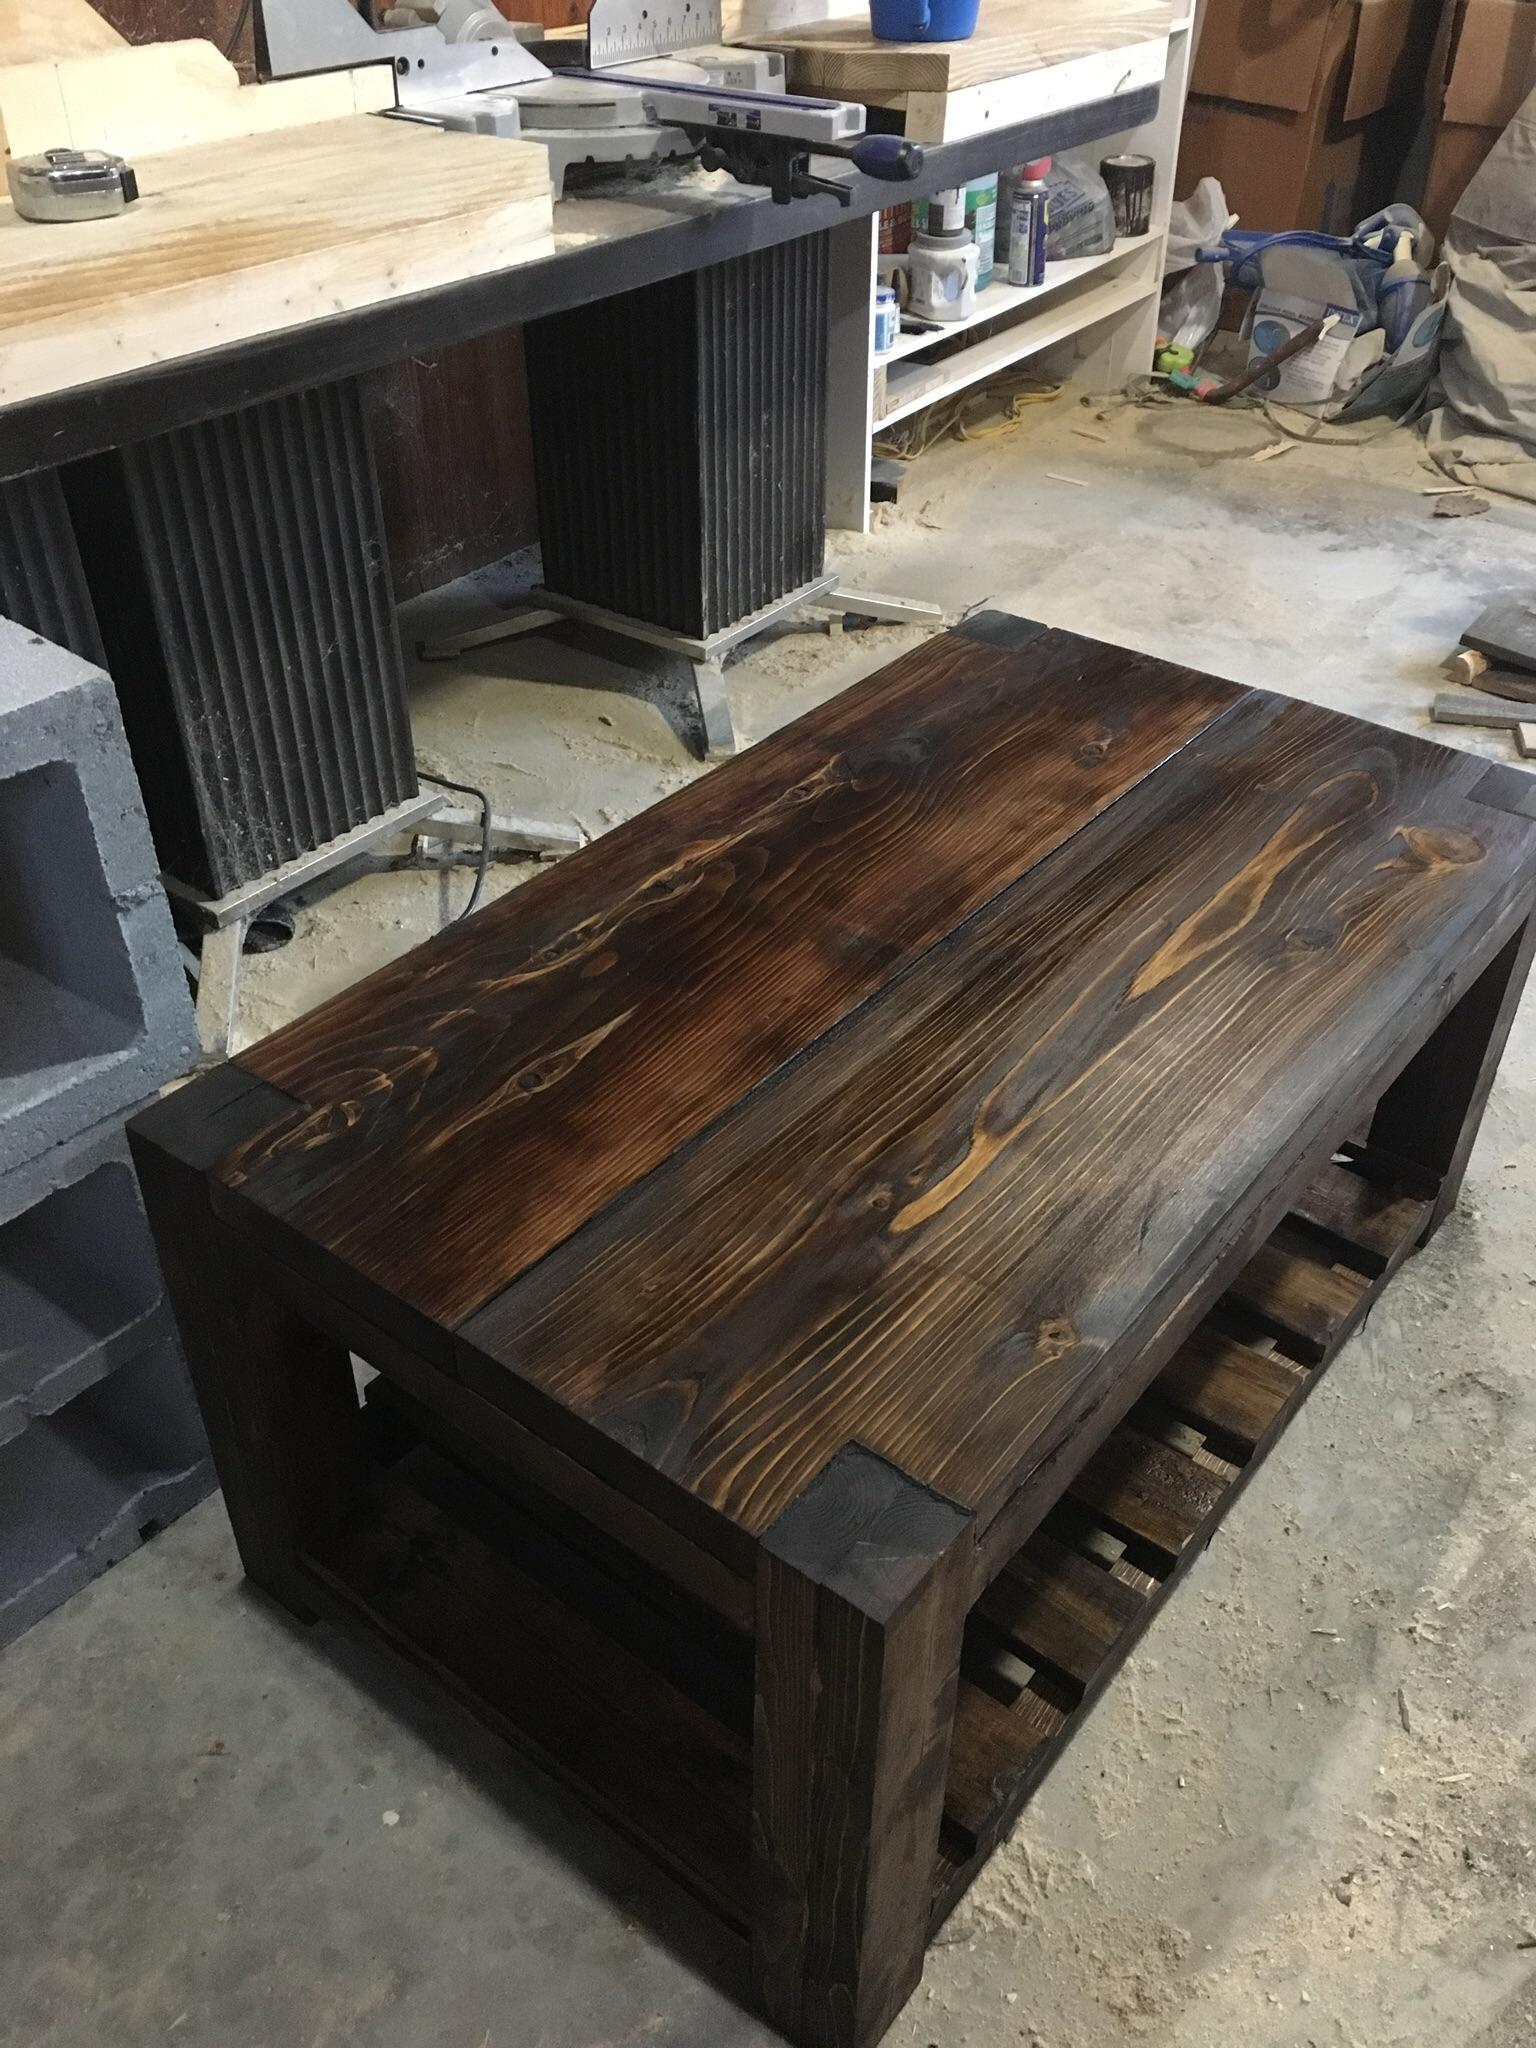 built a coffee table out of scrap wood